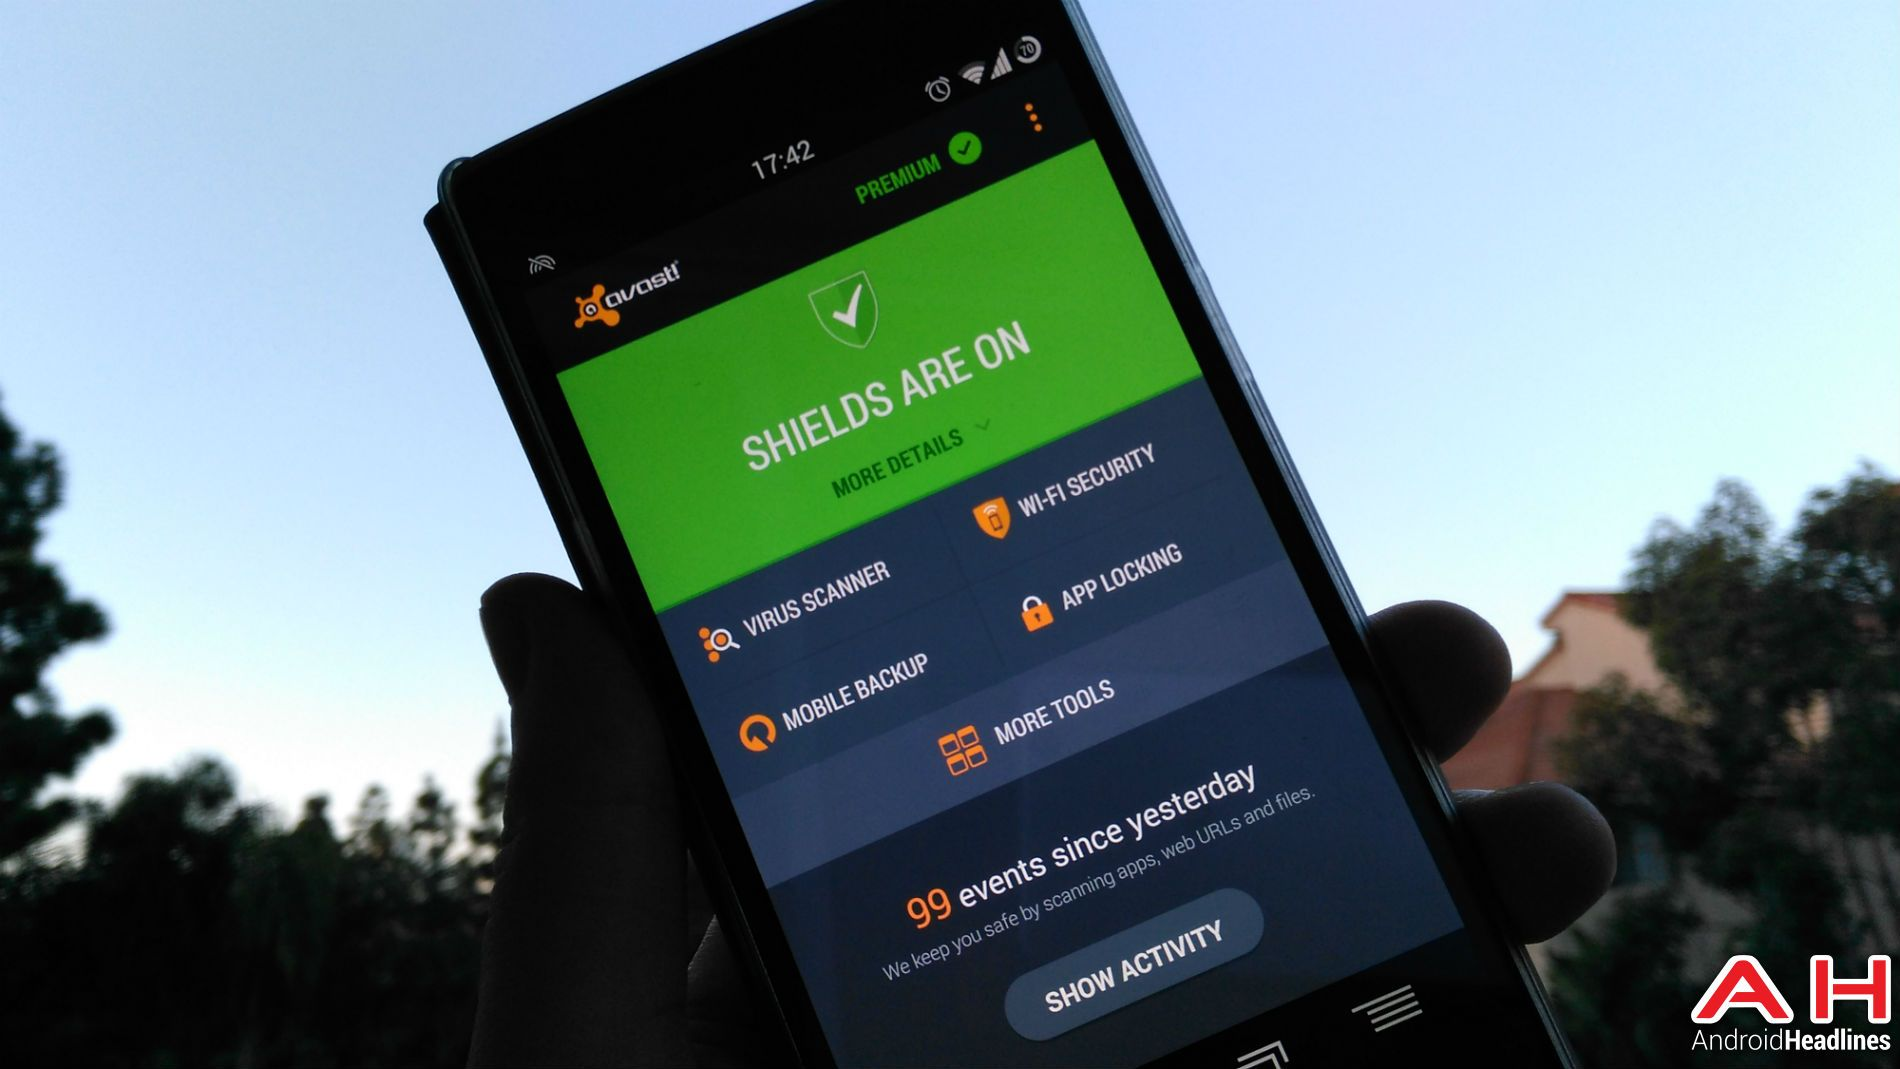 Avast Announce The Launch Of SecureMe Designed To Protect From WiFi Hacking